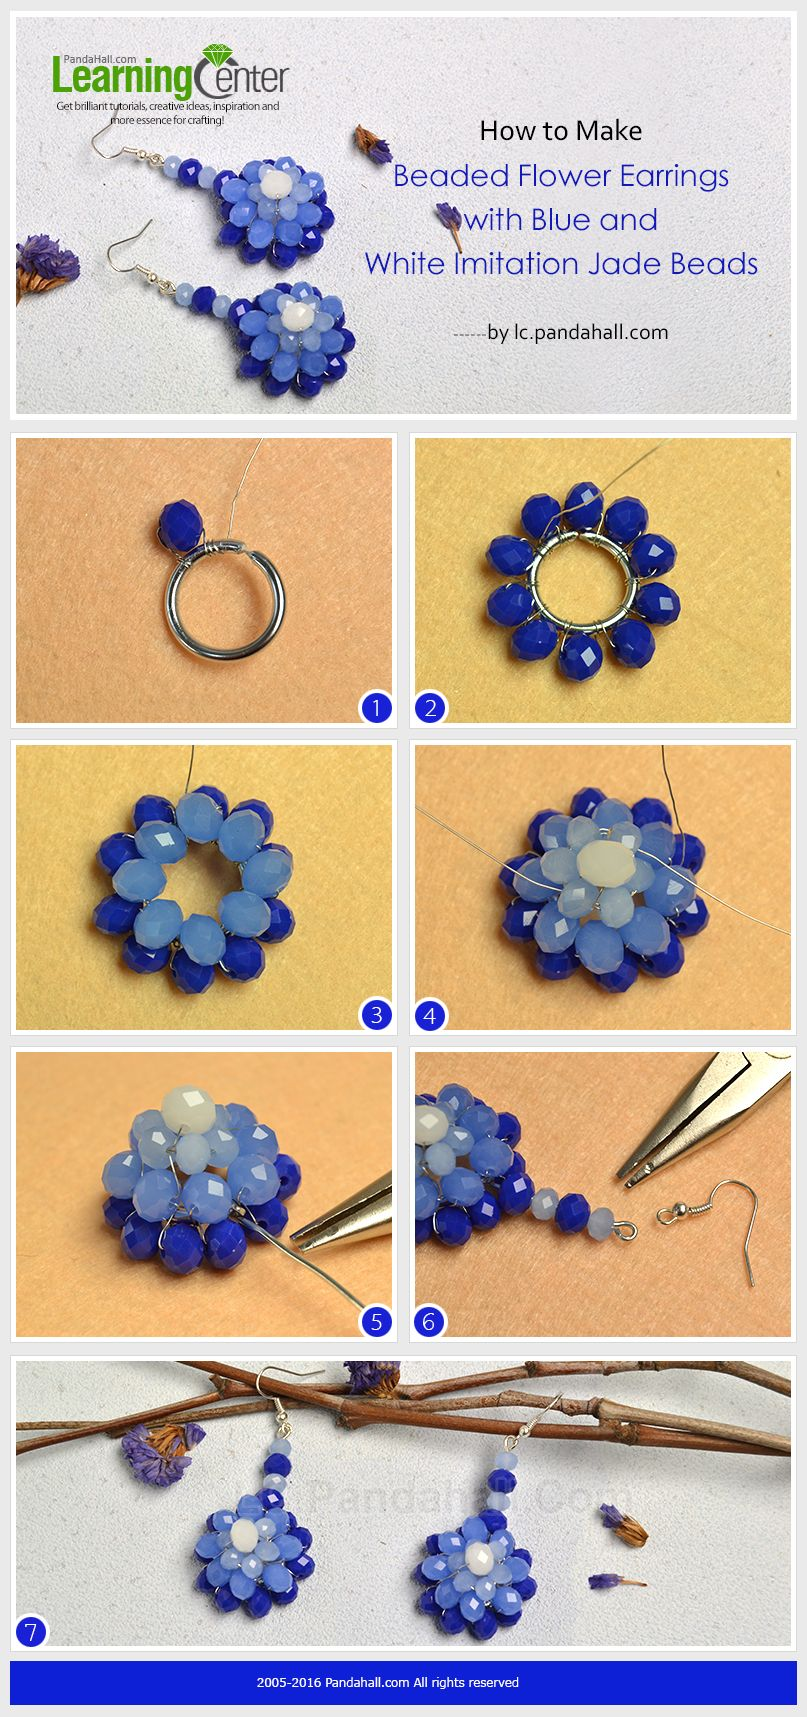 How To Make Beaded Flower Earrings With Blue And White Imitation Jade Beads From Lc Pandahall Com Beaded Earrings Tutorials Bead Jewellery Jewelry Patterns